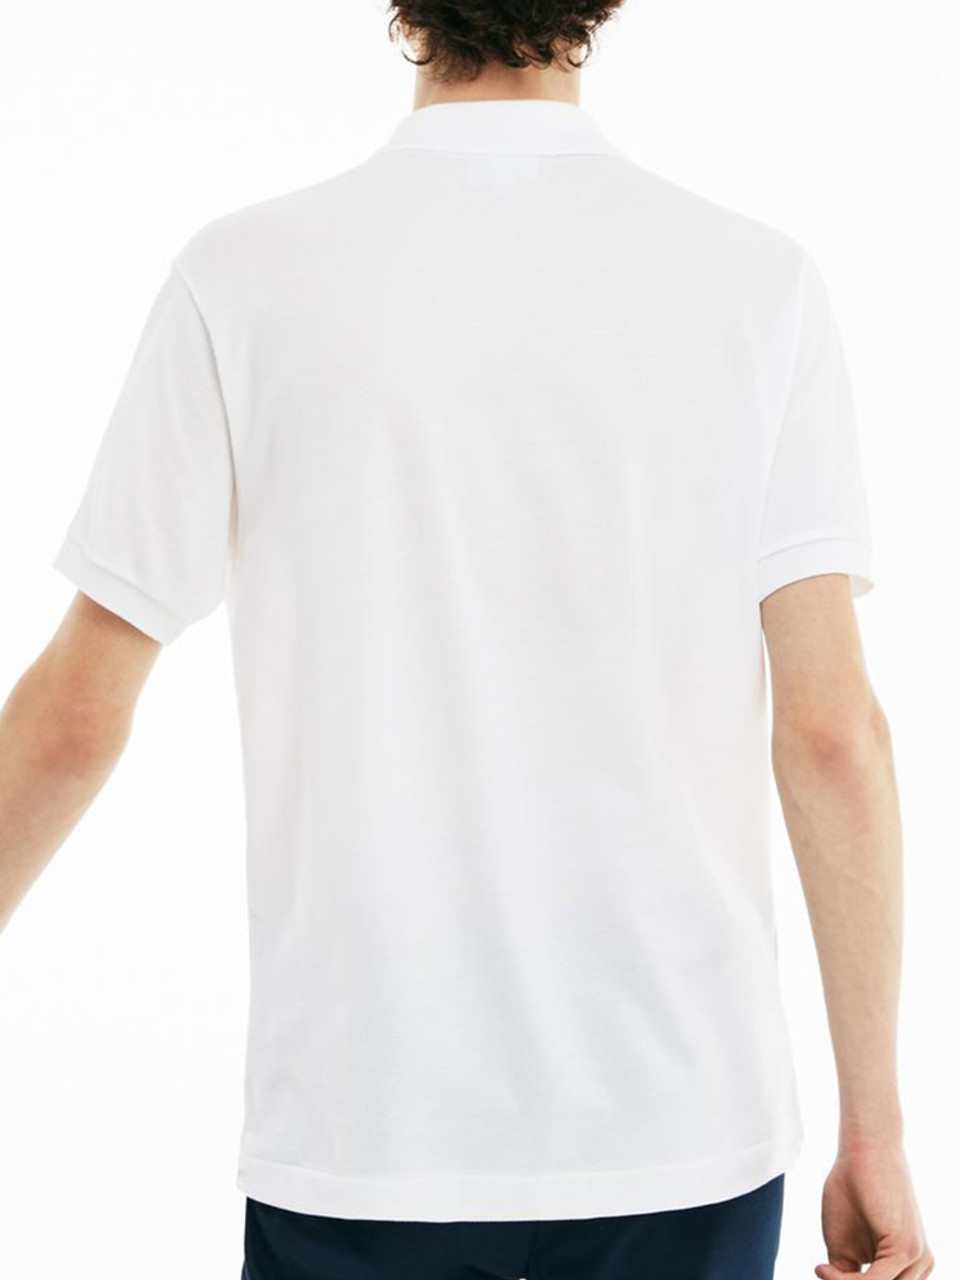 df49b6fe Lacoste L.12.12 Classic Polo - White - Mens For Sale | GolfBox